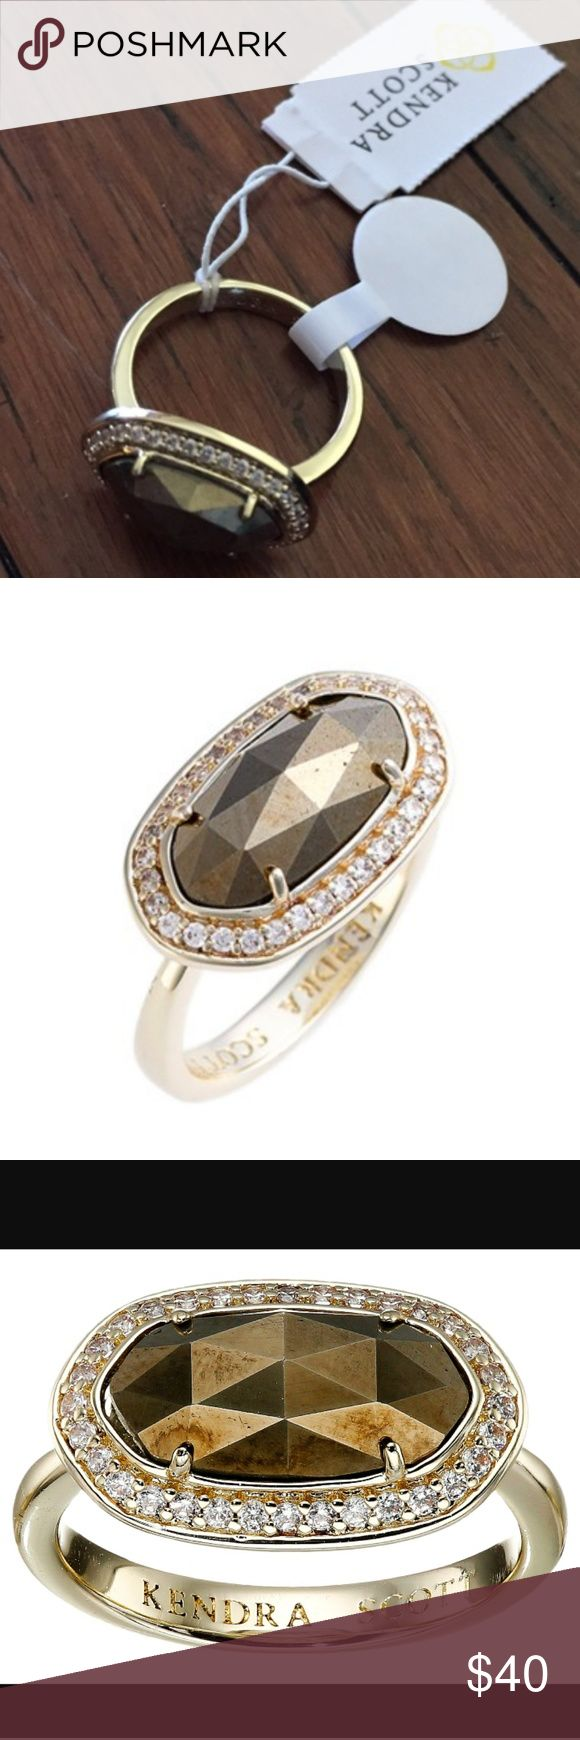 Beautiful Kendra Scott Emmaline Gold Ring Beautiful Kendra Scott Emmaline Gold Ring size 7 Kendra Scott Jewelry Rings